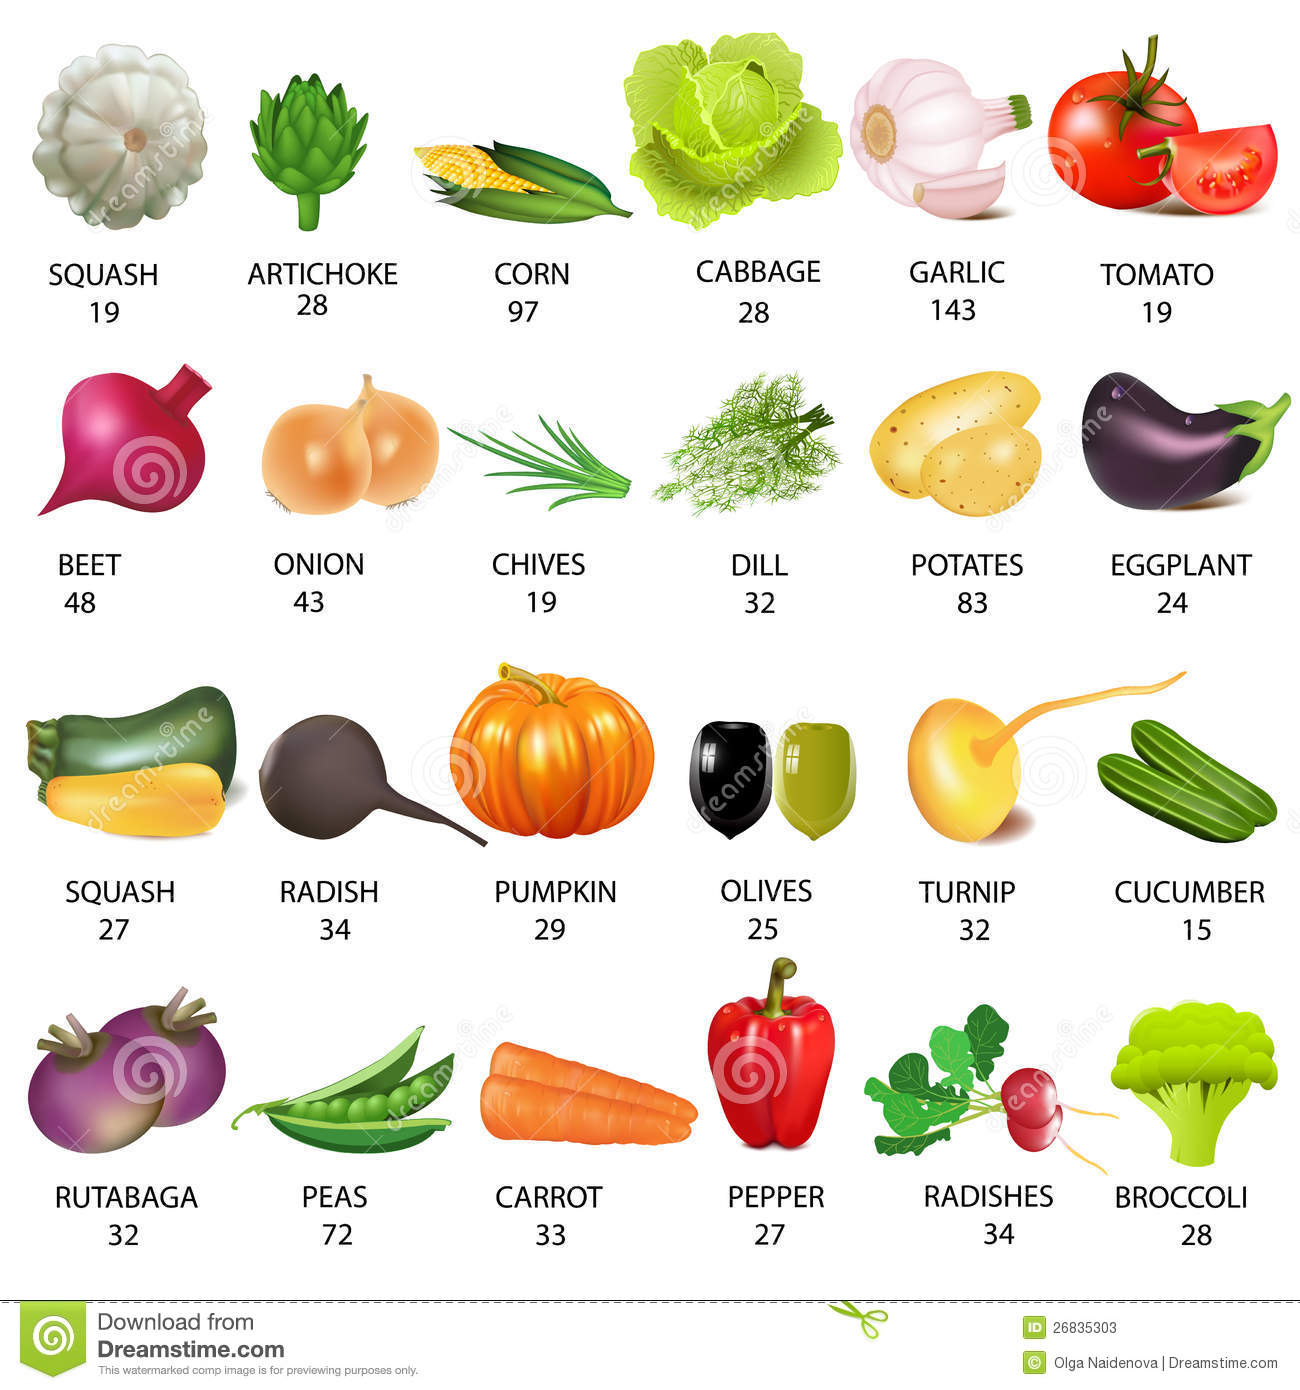 Vegetables To Give Dogs